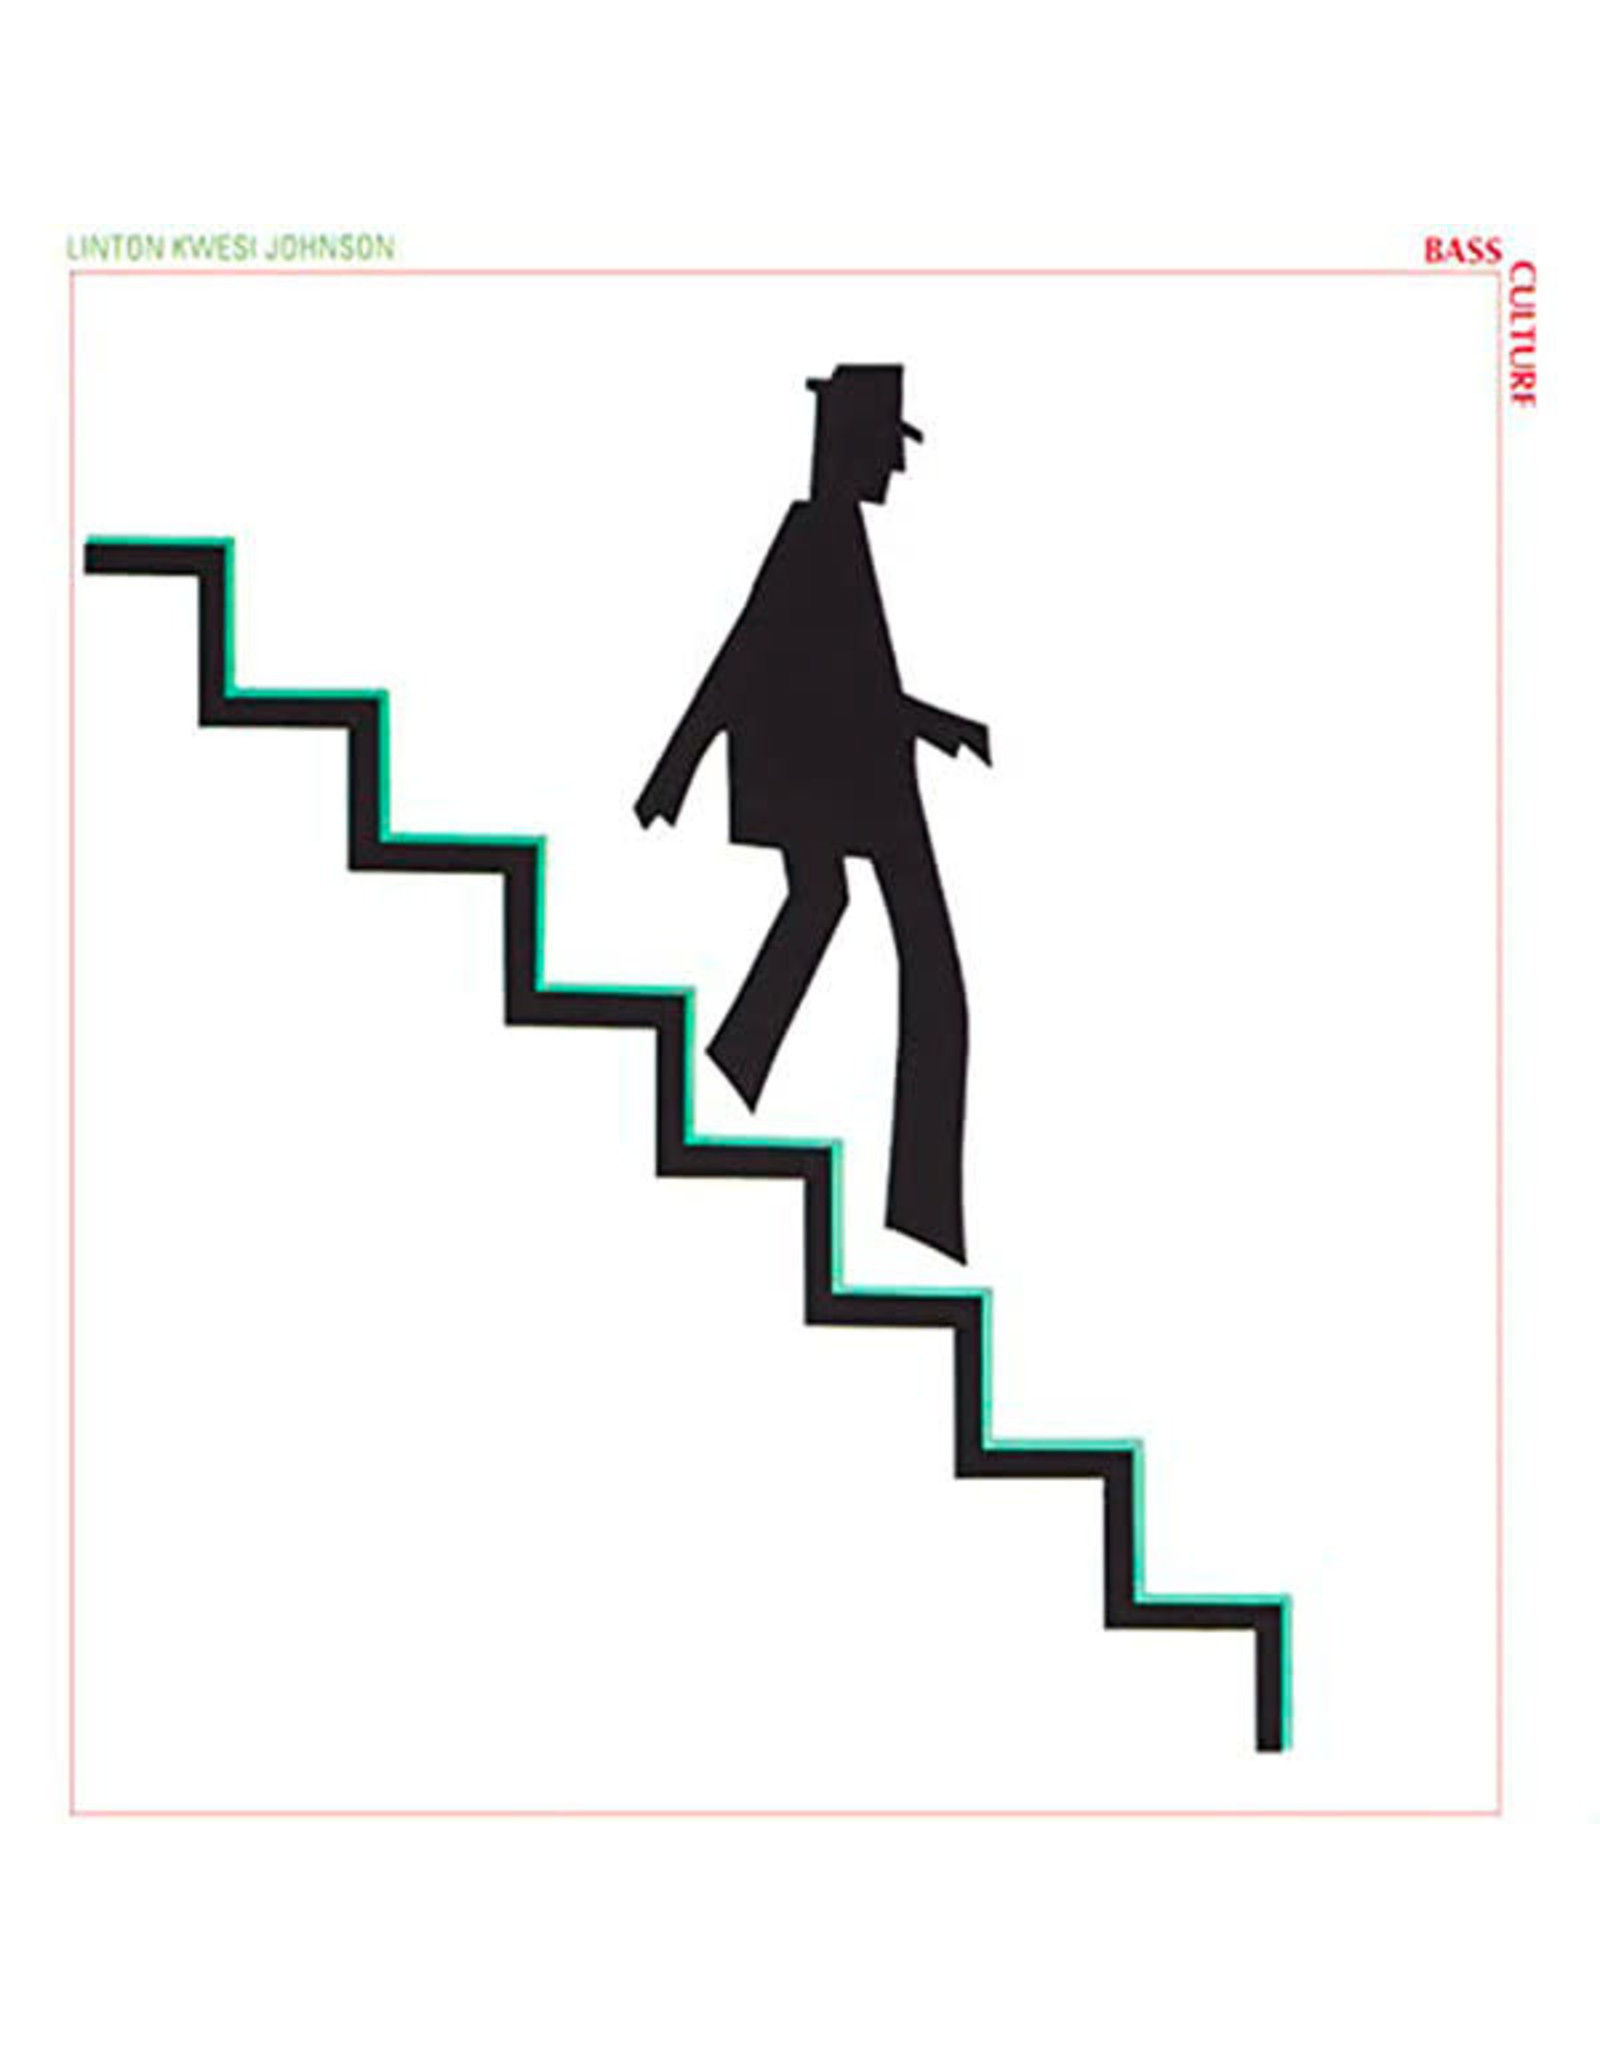 Johnson, Linton Kwesi - Bass Culture (RSD) 2LP